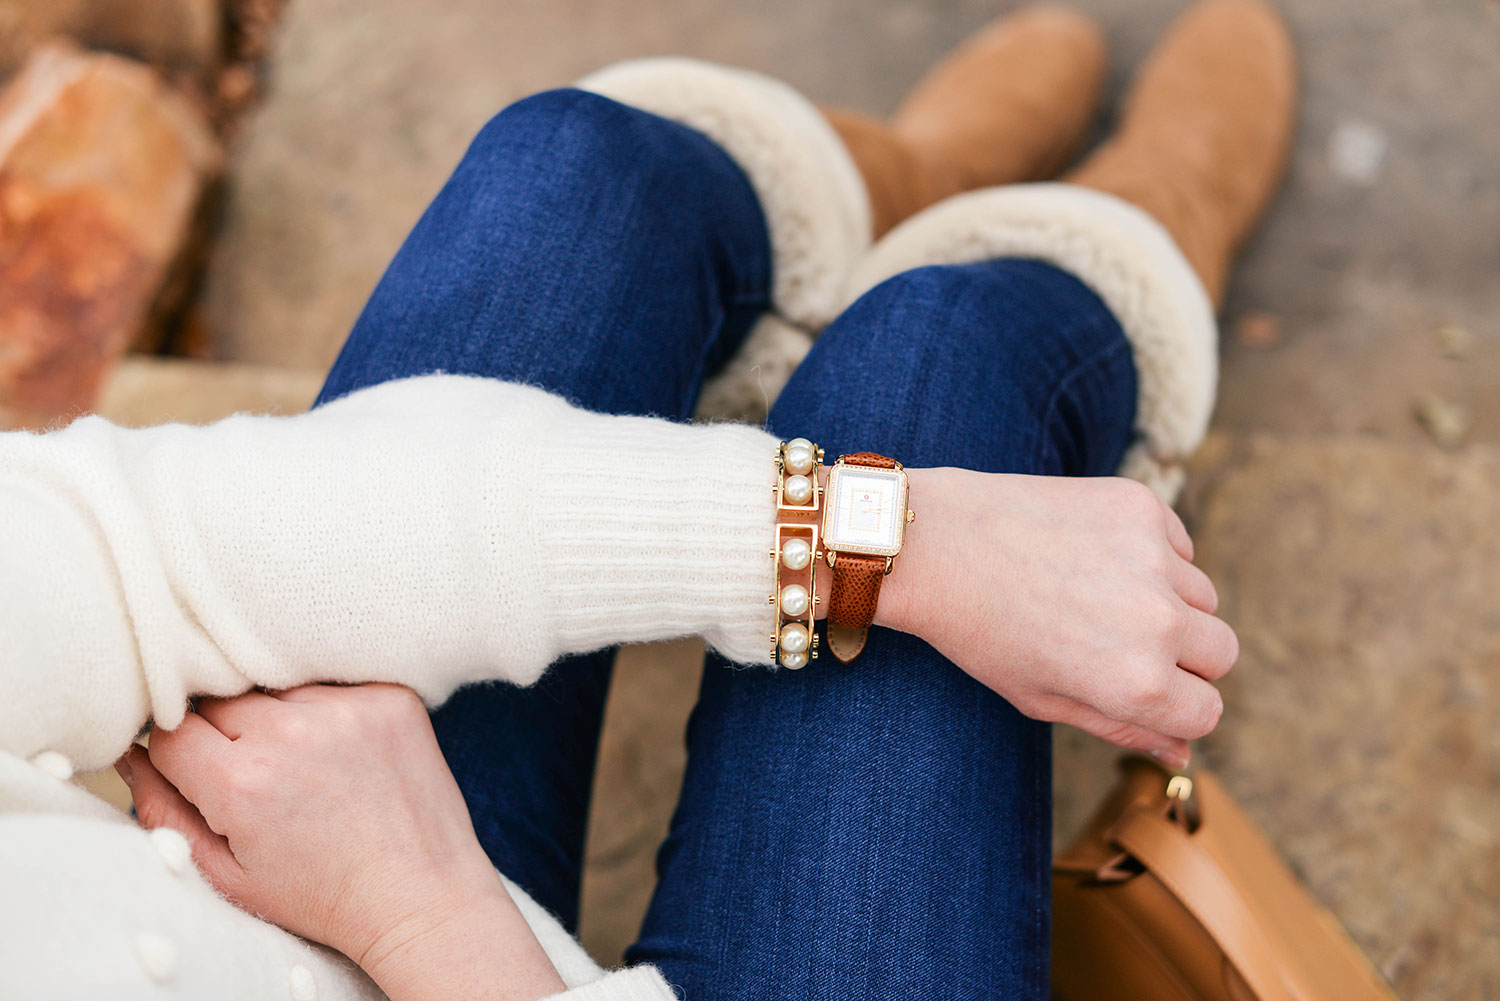 Winter Warmth | The Style Scribe